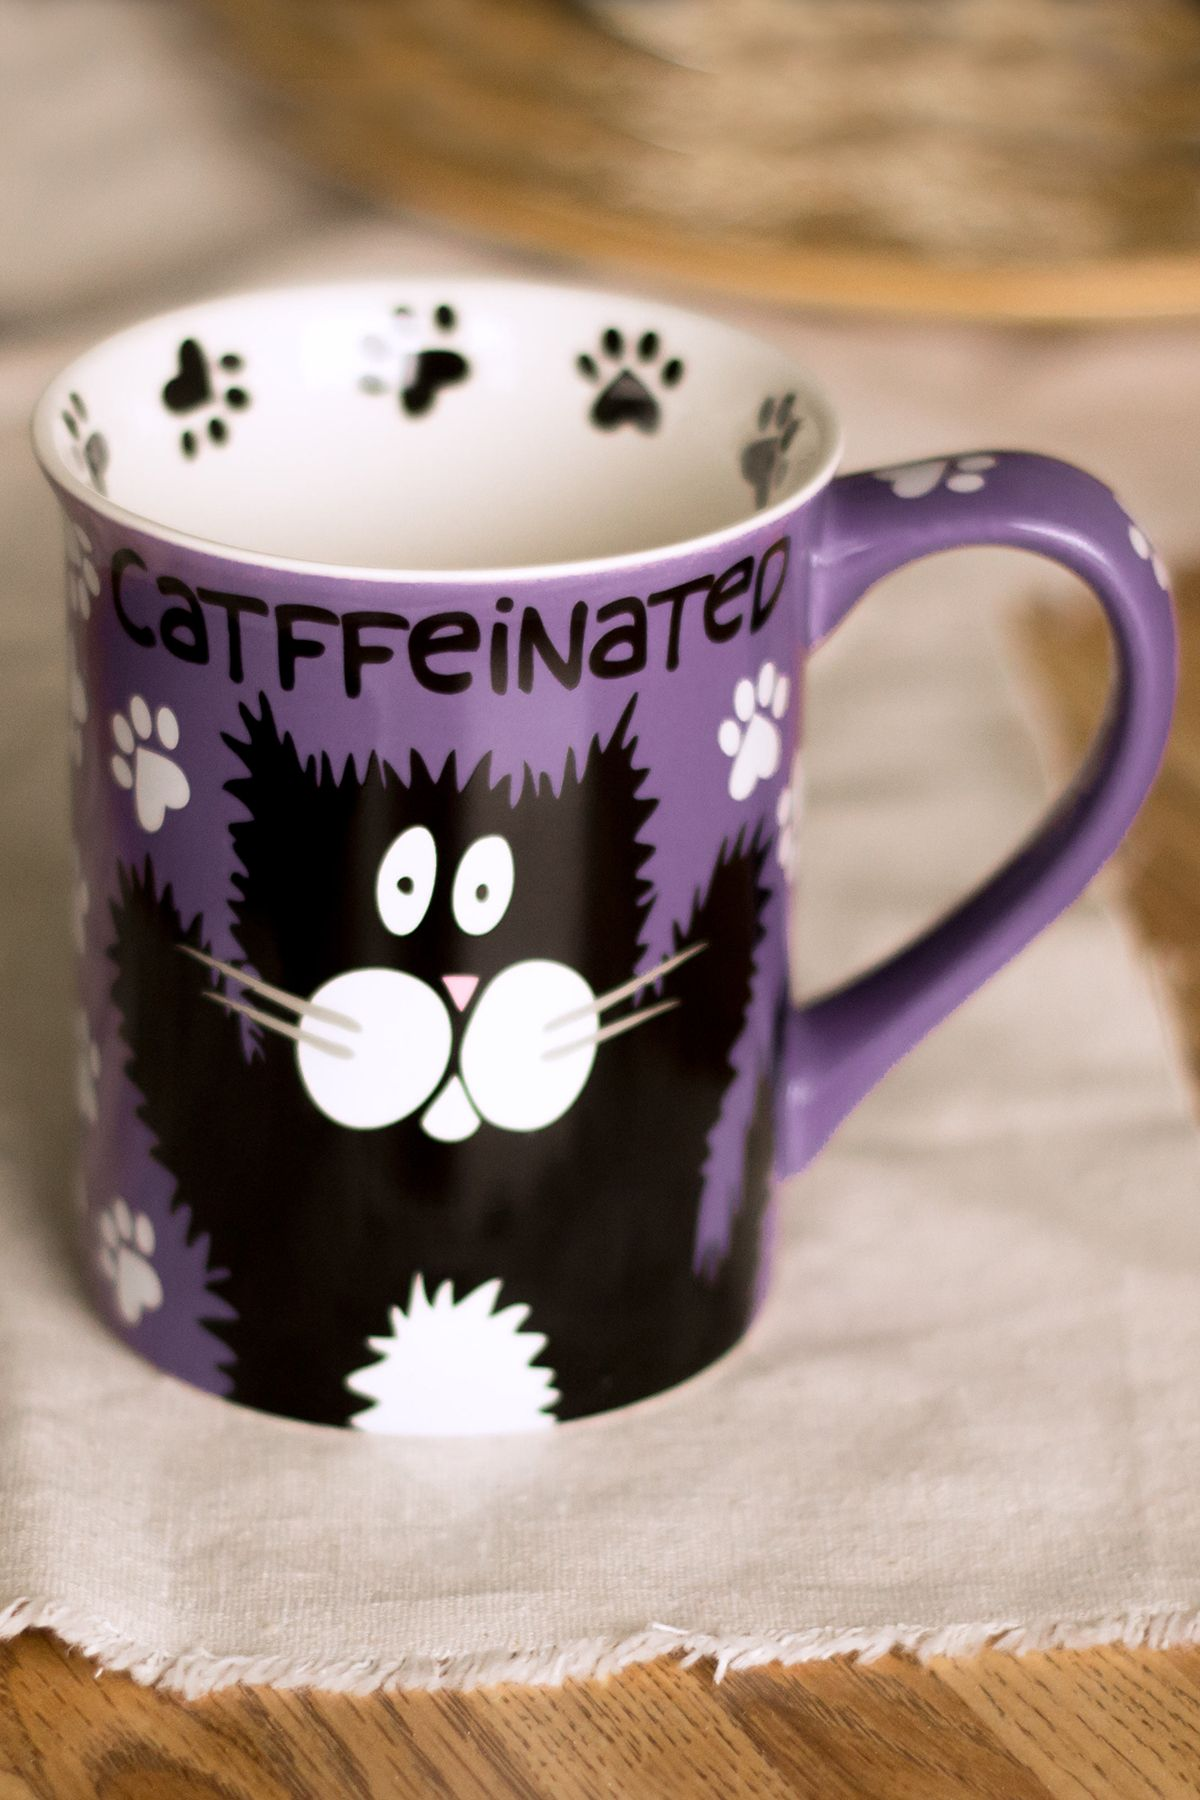 Whether you take your coffee catffeinated or decatf, our roomy mug expresses your preference in comic style. One side shows a wired-up kitty enjoying a coffee buzz while the other shows her curled up for a cozy nap.